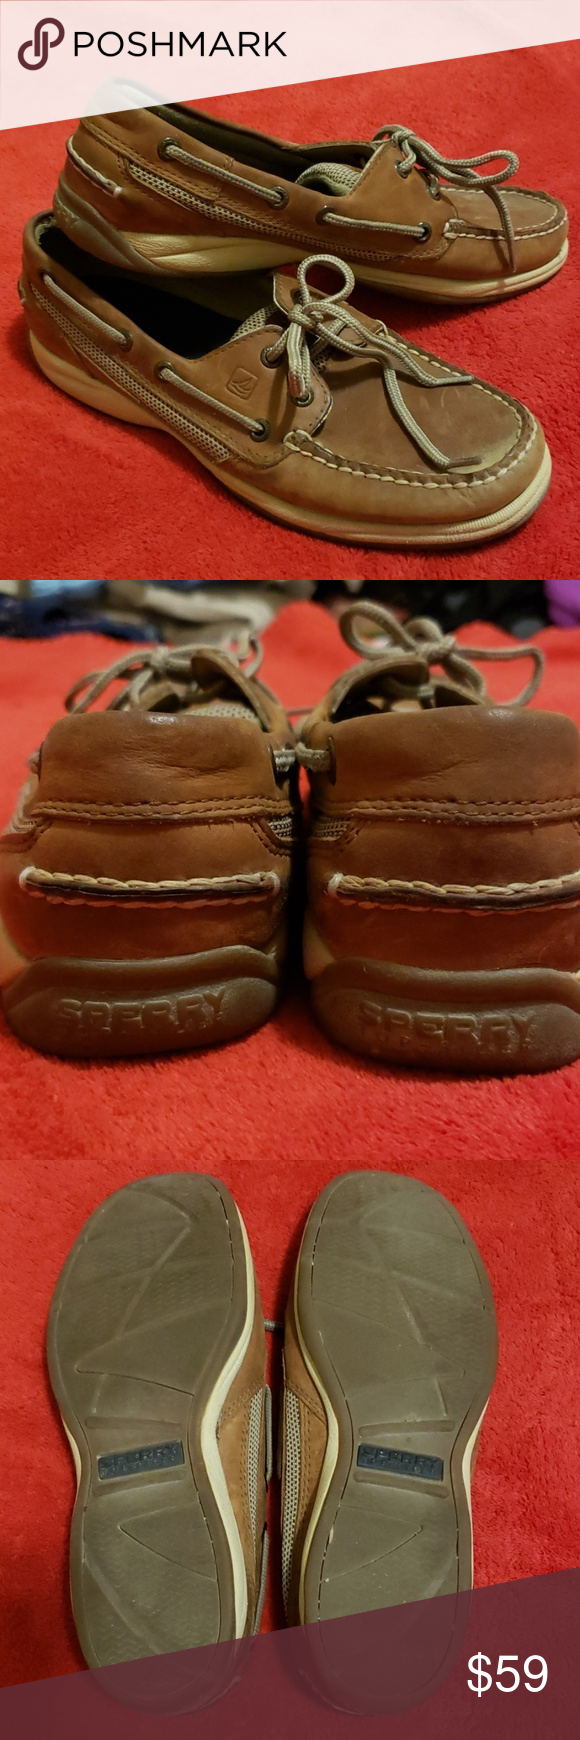 Sperry Top Sider   Sperry top sider